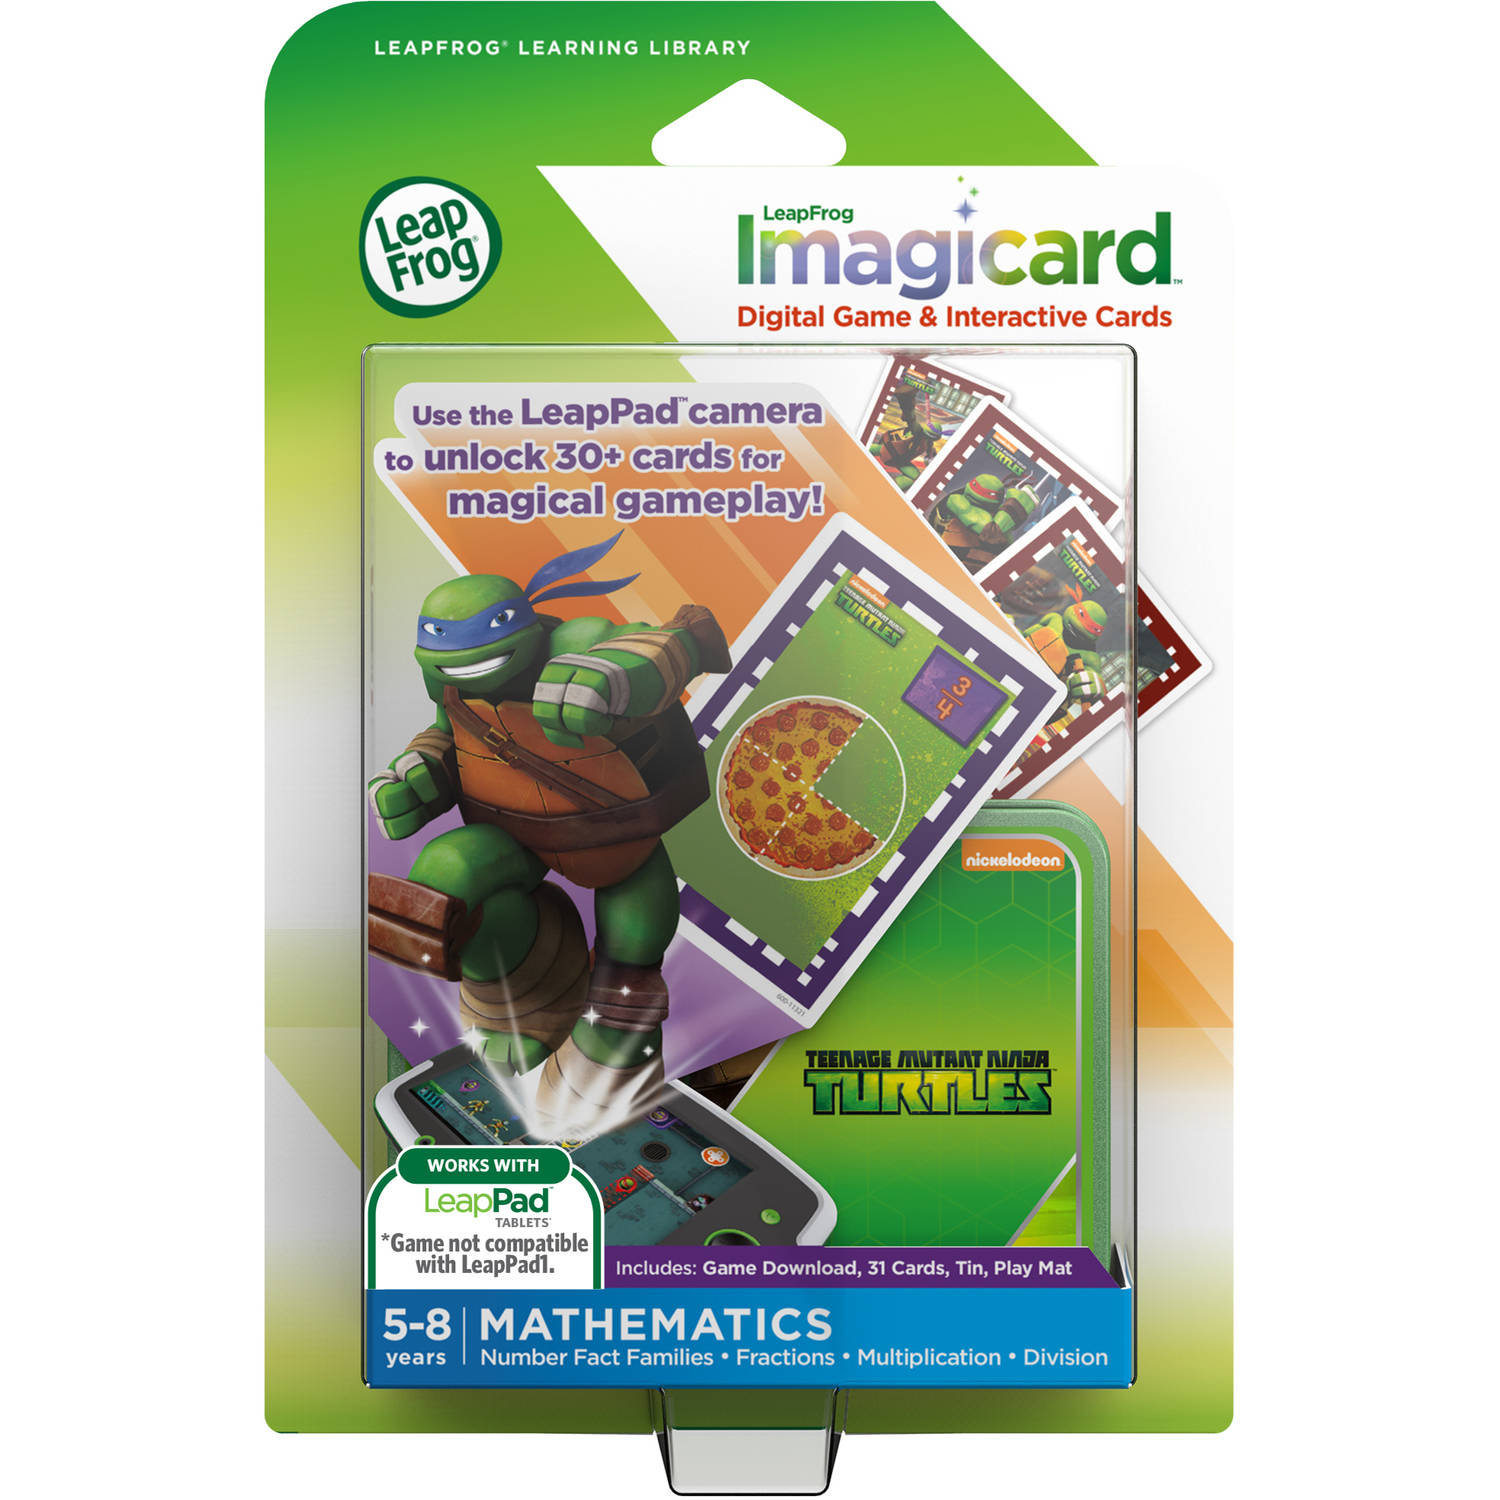 LeapFrog IMagicard Teenage Mutant Ninja Turtles Learning Game by LeapFrog